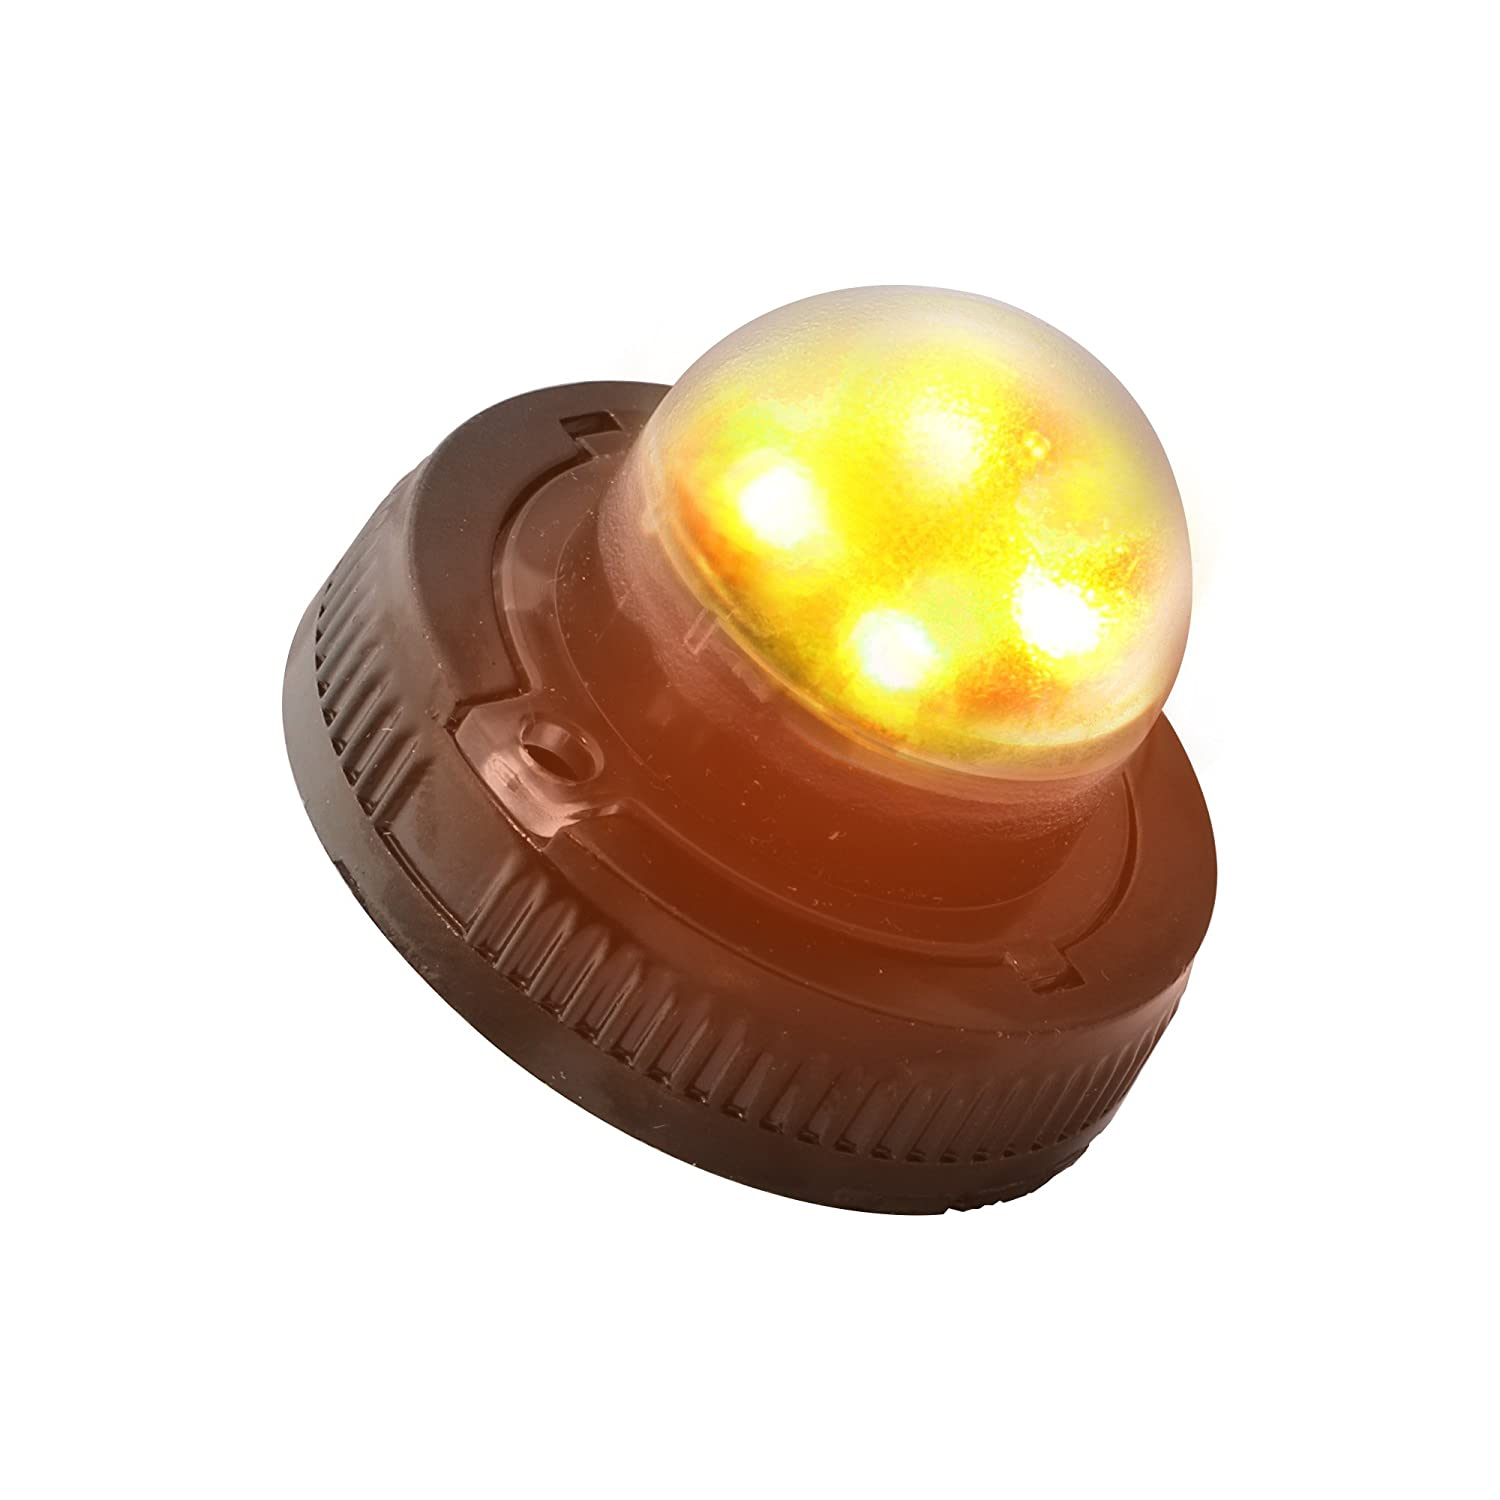 LAMPHUS SnakeEye II-4W SEHA14 REV.1 Emergency Vehicle Construction Tow  Truck Surface Mount 4W LED Hide-Away Strobe Warning Light AVAILABLE -  AMBER 528c91ef5a16